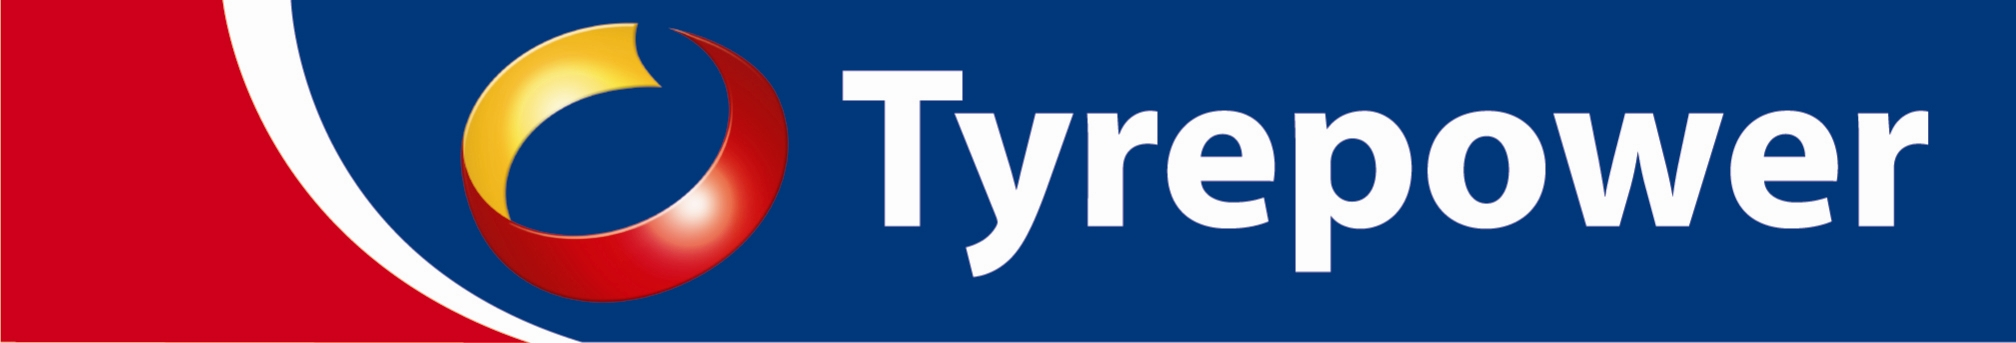 Tyrepower new logo 1.JPG